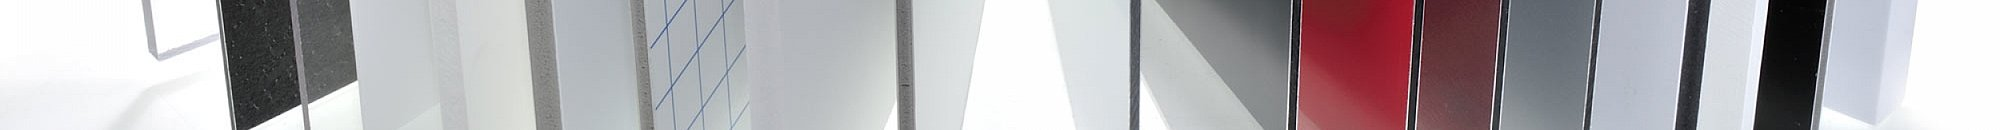 EXCELLENCE IN SHEET MATERIALS FOR SIGN AND DISPLAY APPLICATIONS